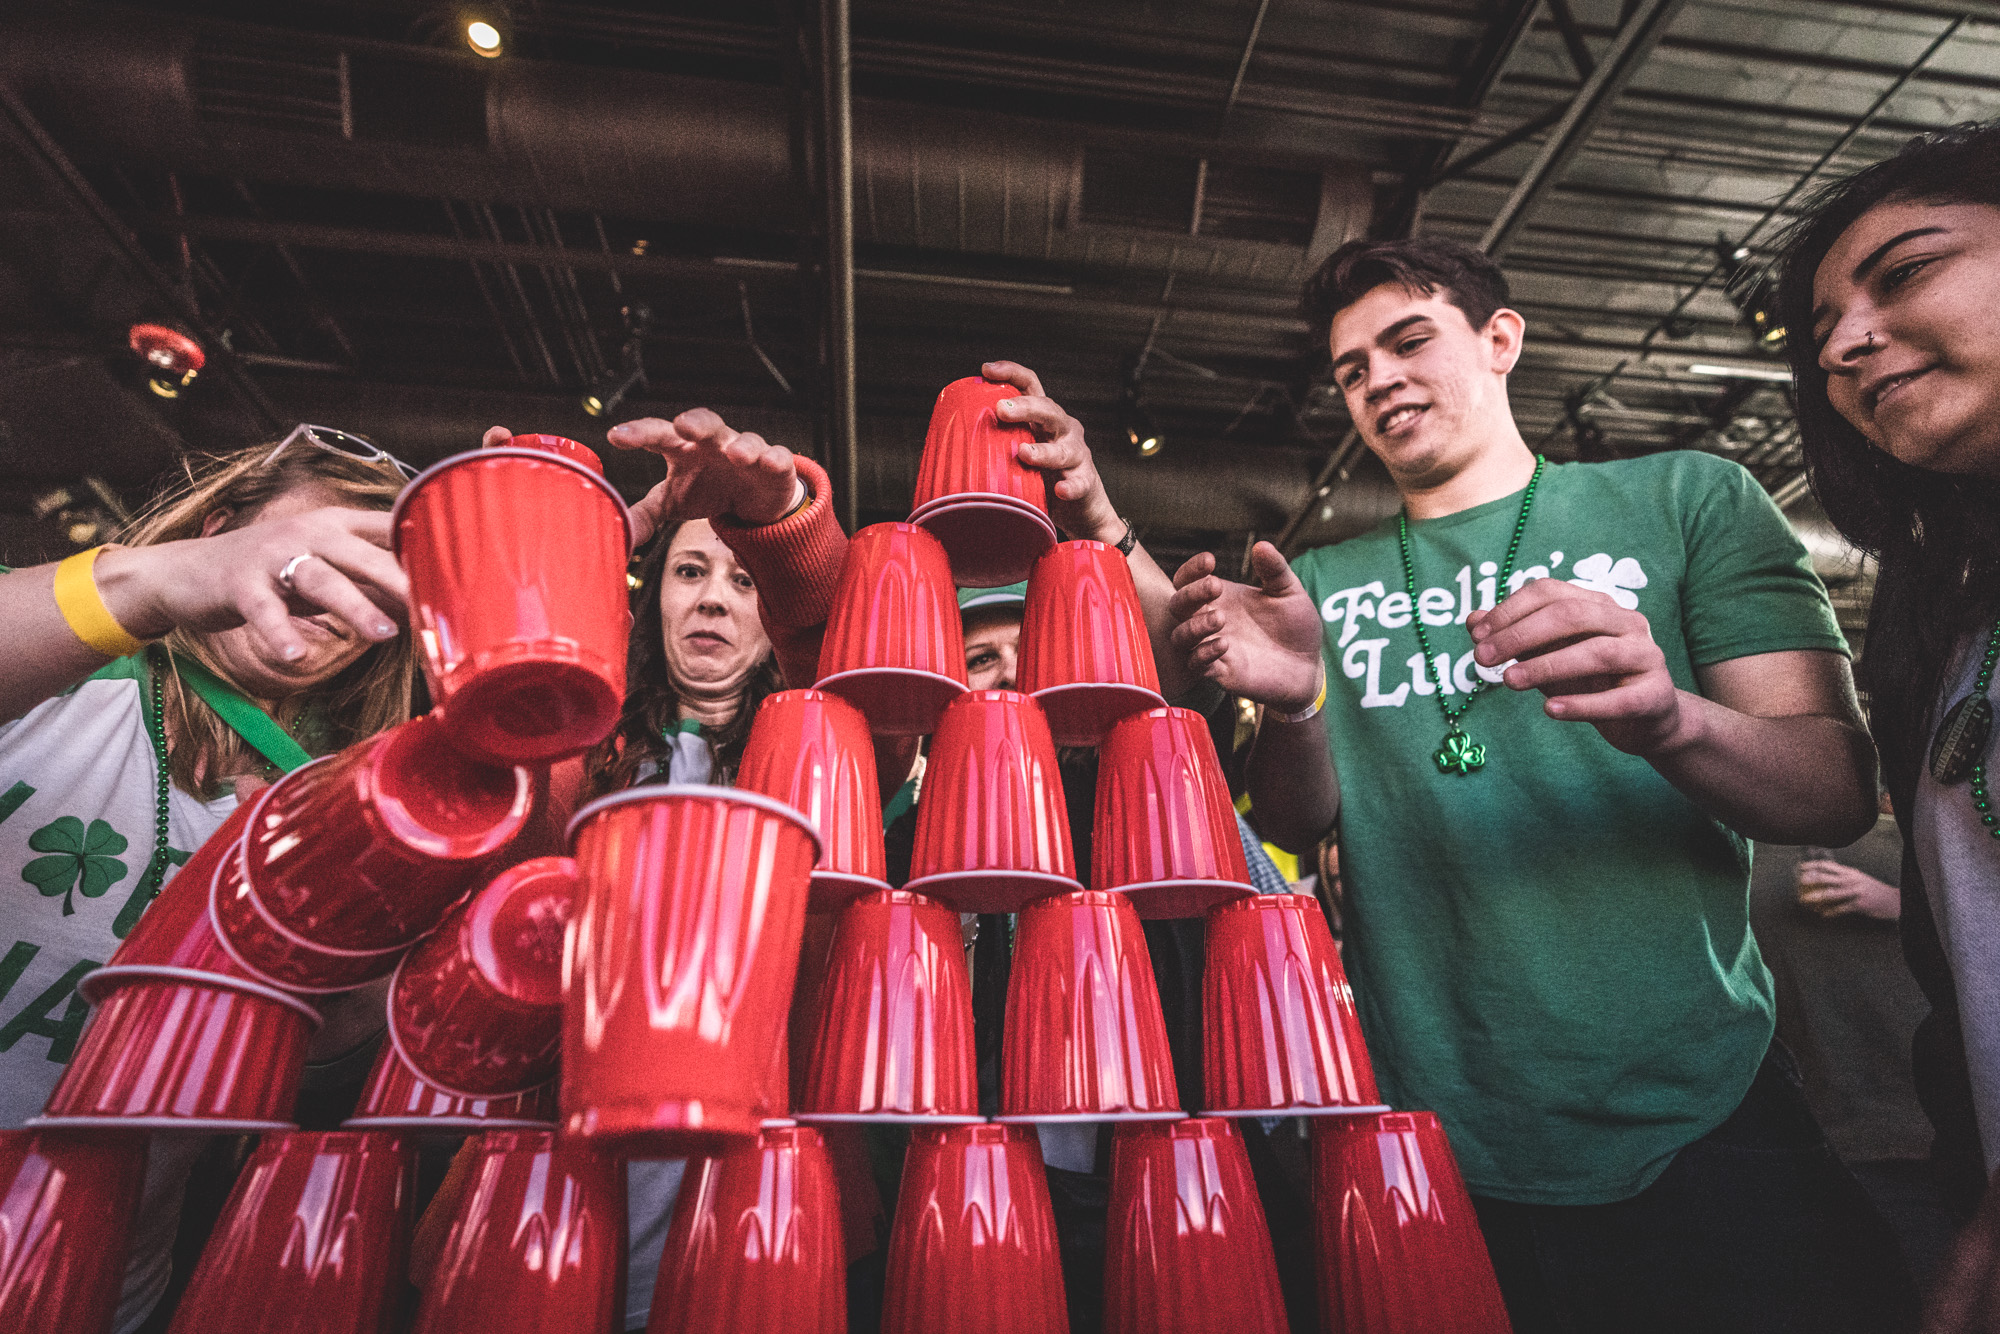 Color photo of a group of people attempting to stack red solo cups at the ASC Shamrock Stumble pub crawl fundraiser for Saint Patrick's Day in Littleton, CO.